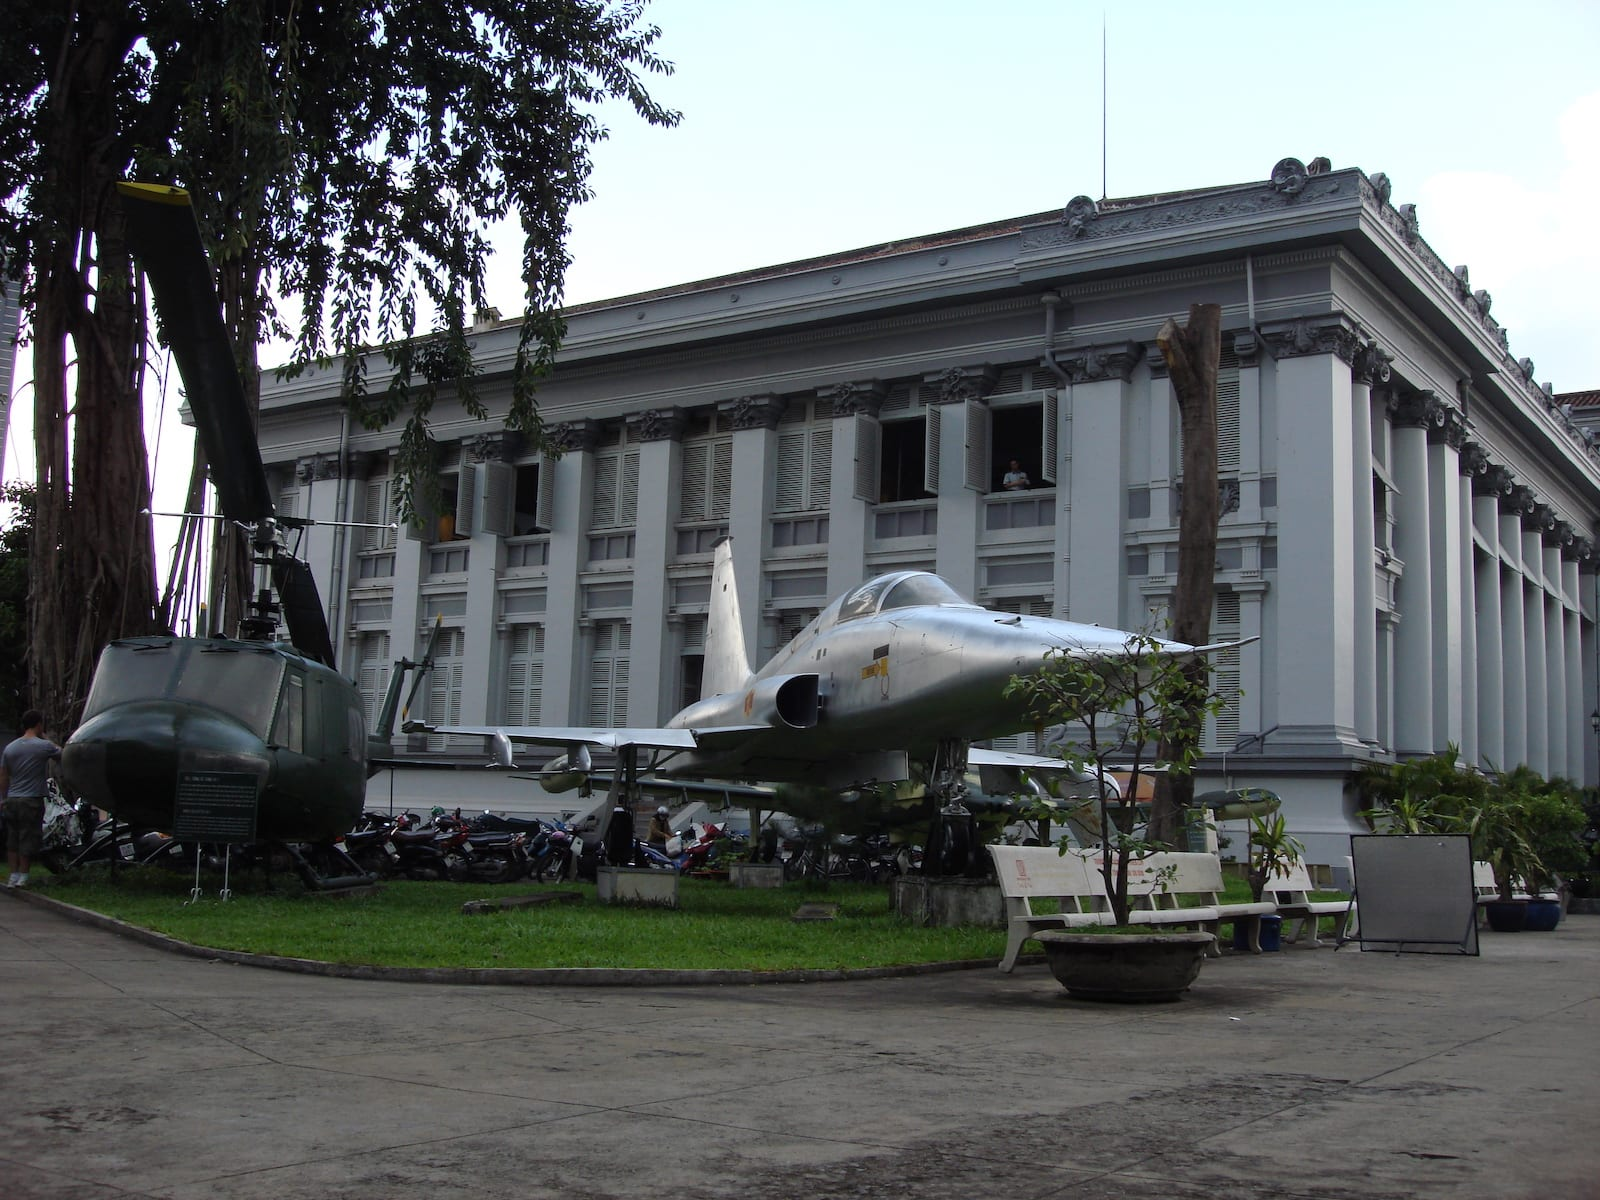 Image of a helicopter and military plane at the Ho Chi Minh Museum in Saigon